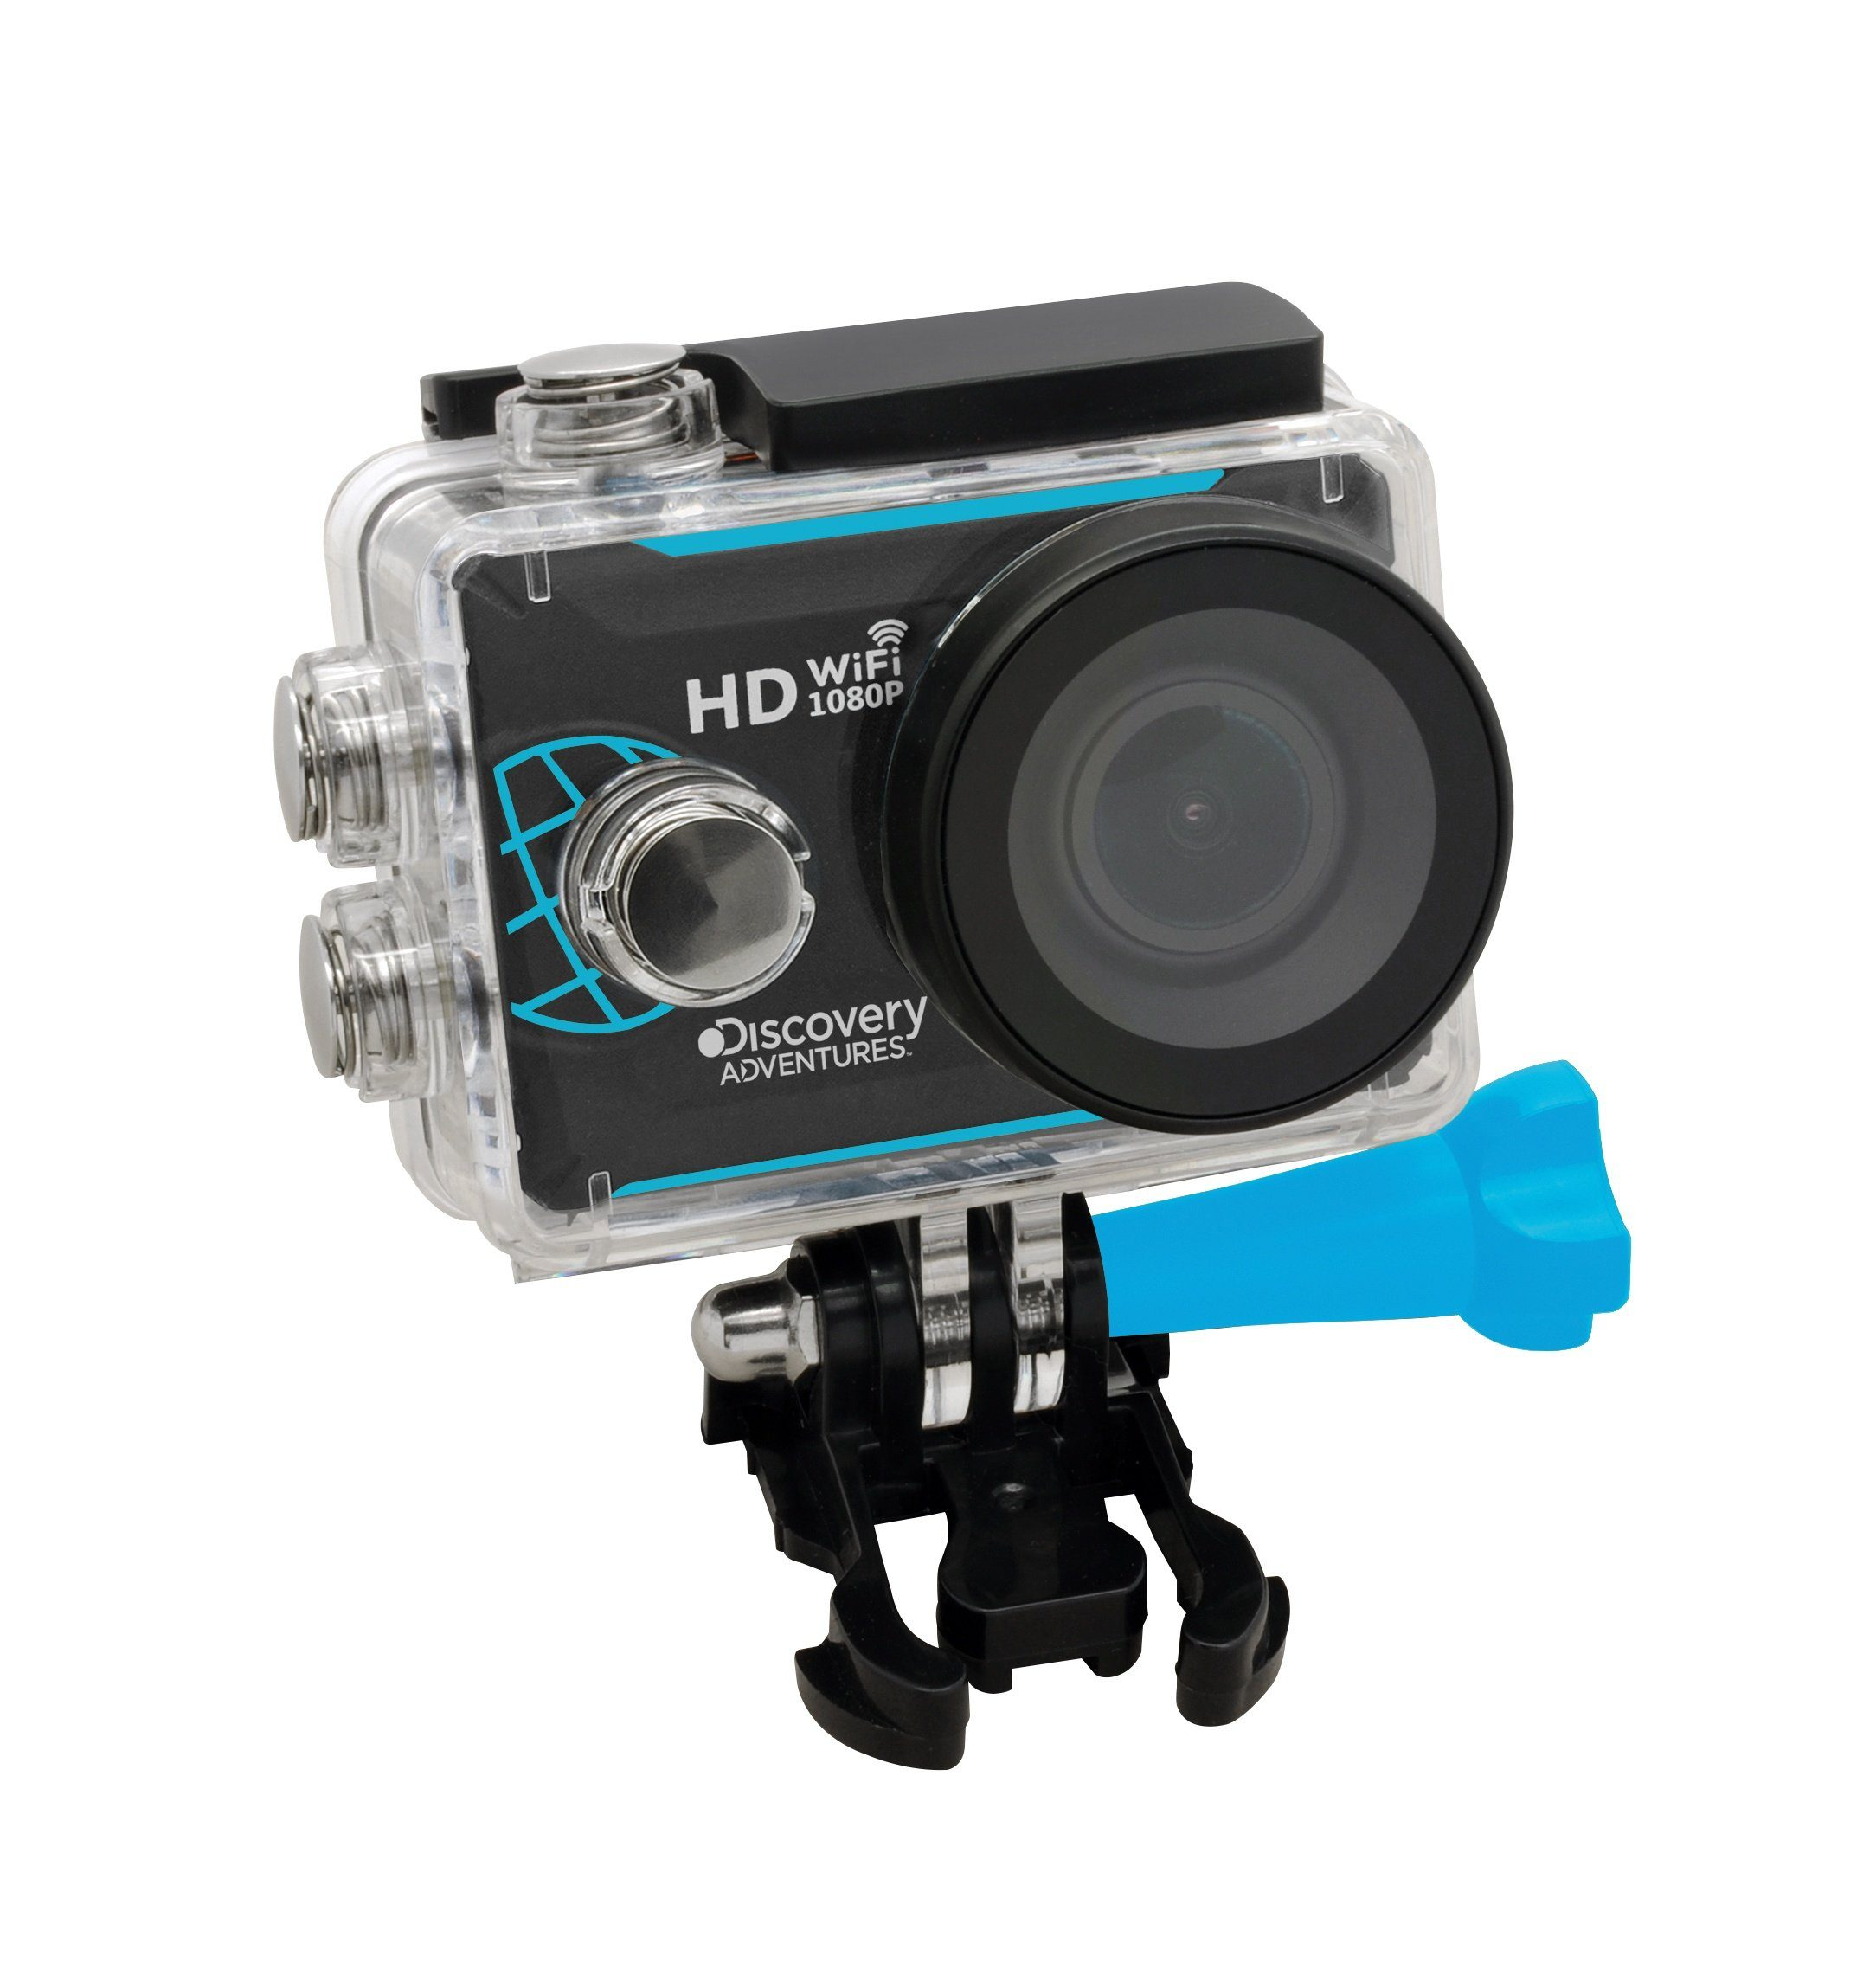 BRESSER Action Cam »DISCOVERY ADVENTURES Full-HD WLAN Action Cam Trek«